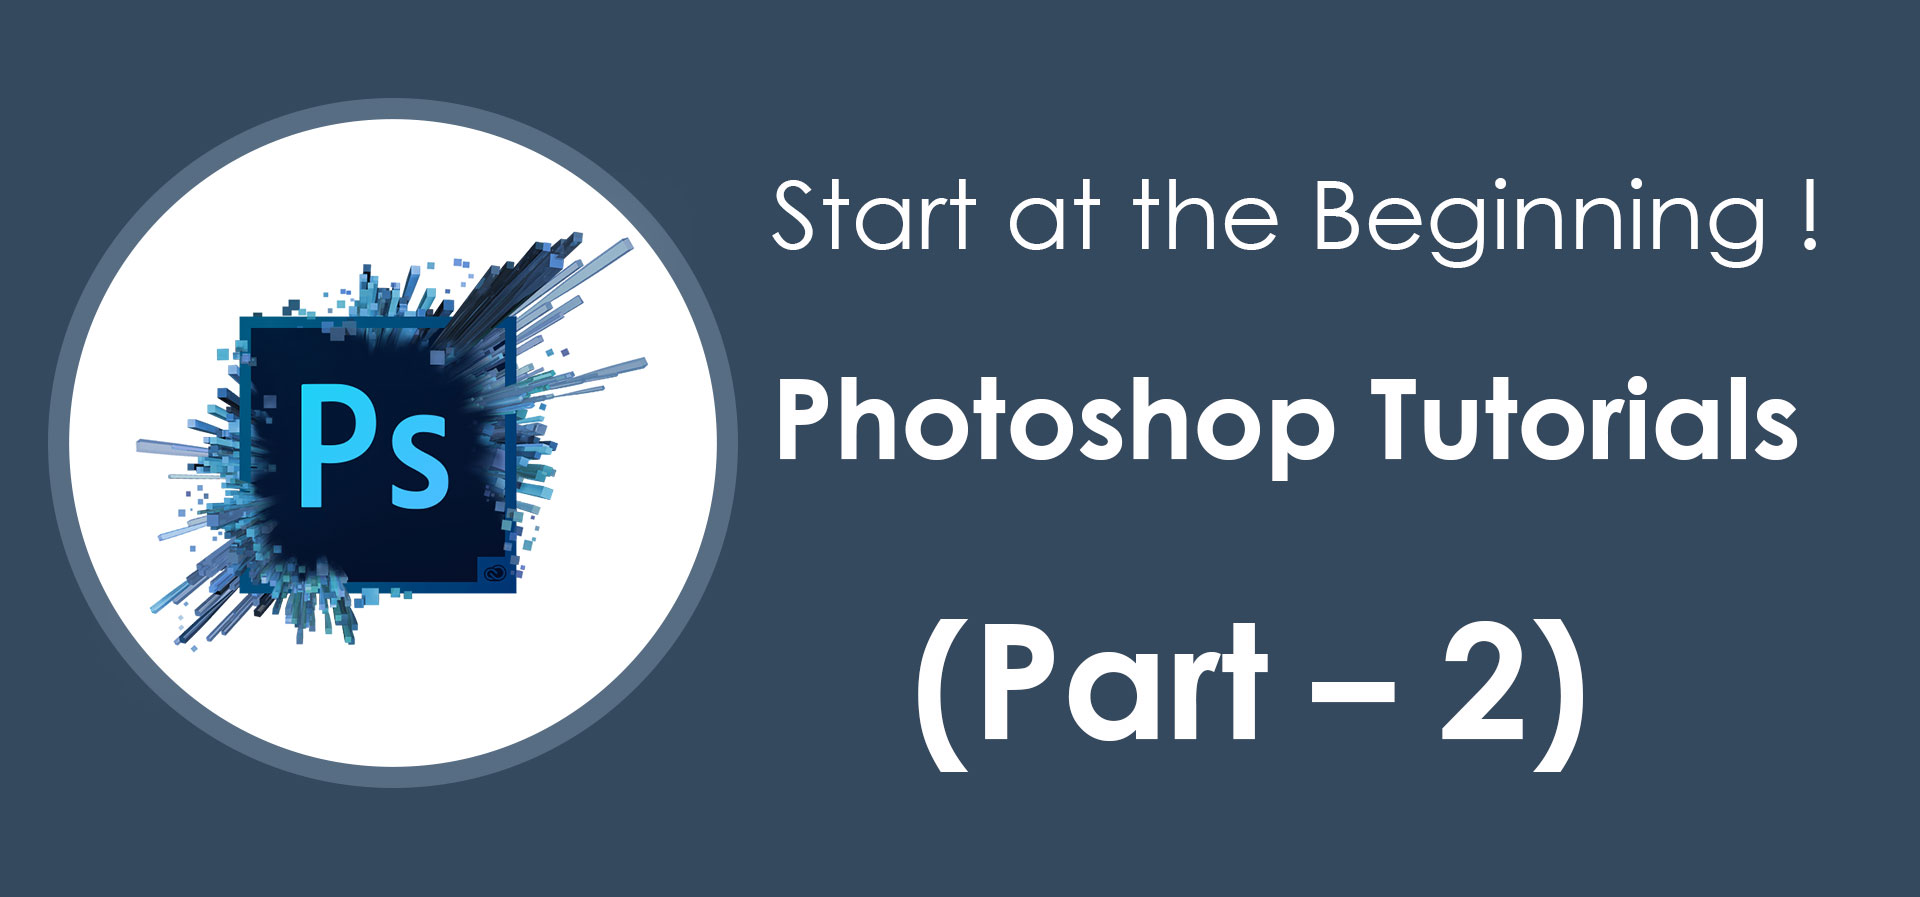 Start-at-the-Beginning-!-Photoshop-Tutorials-(Part-2)